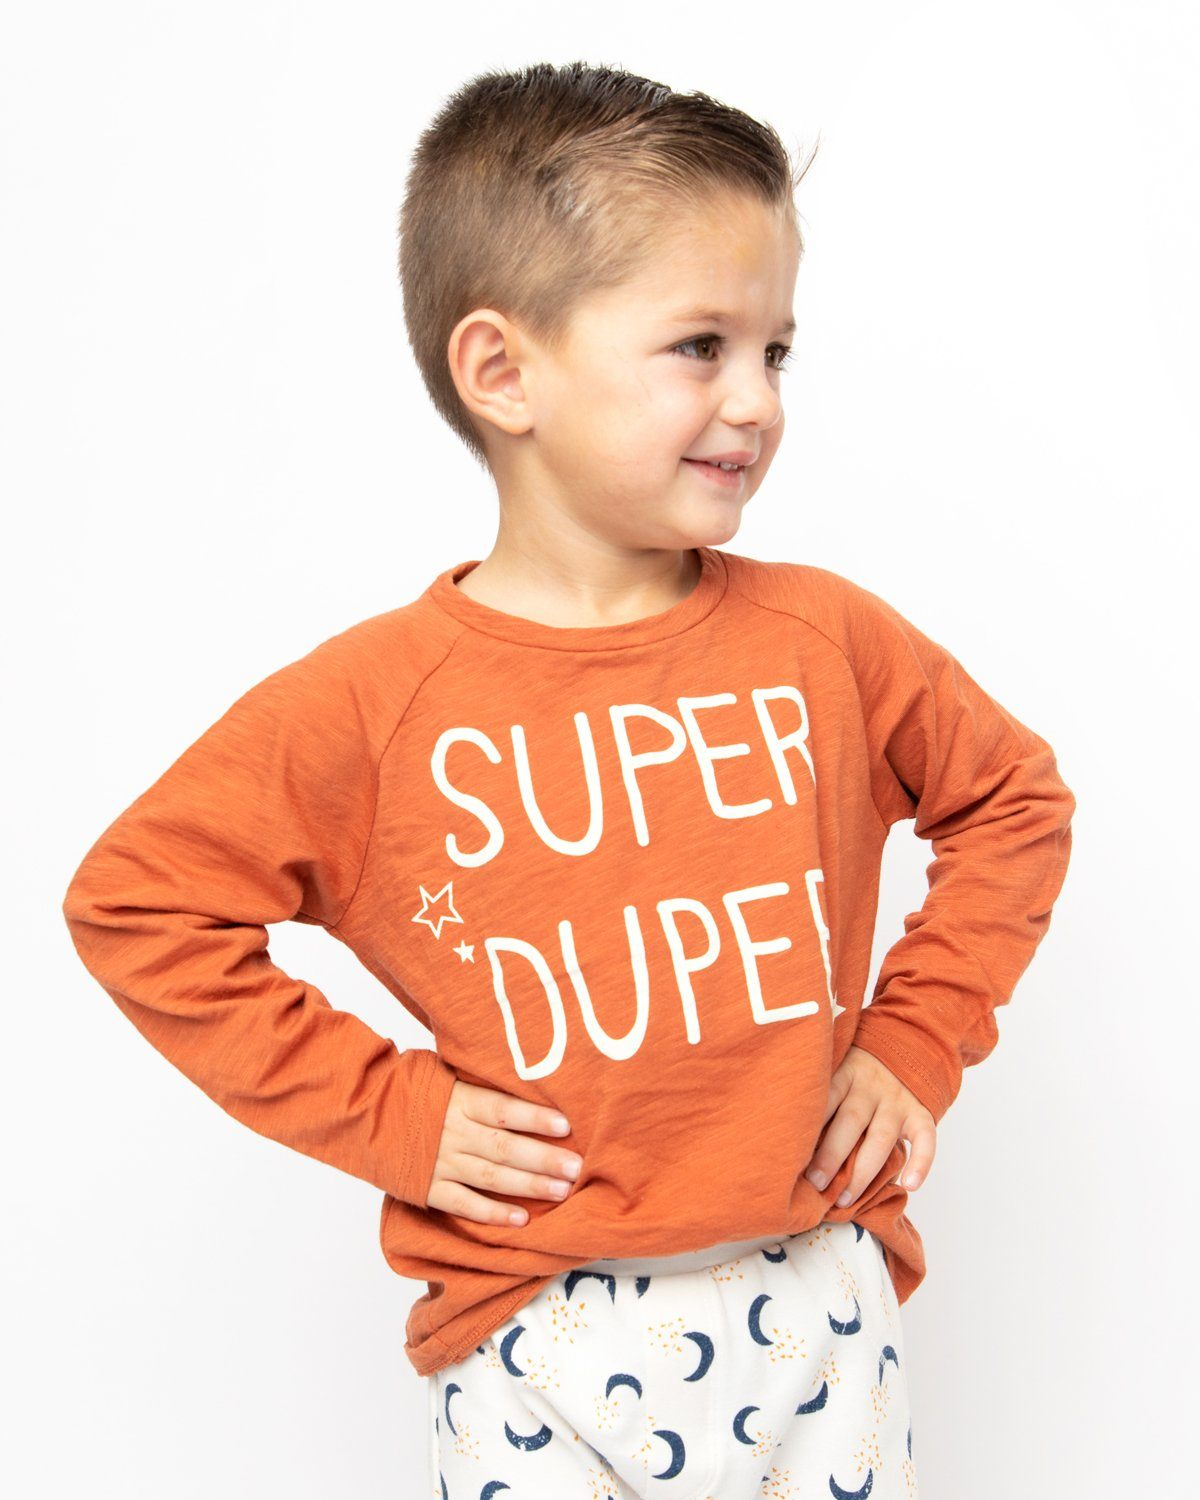 Super Duper Long Sleeve Graphic Tee Kids - Long Sleeve Graphic Tee Kids Clothing